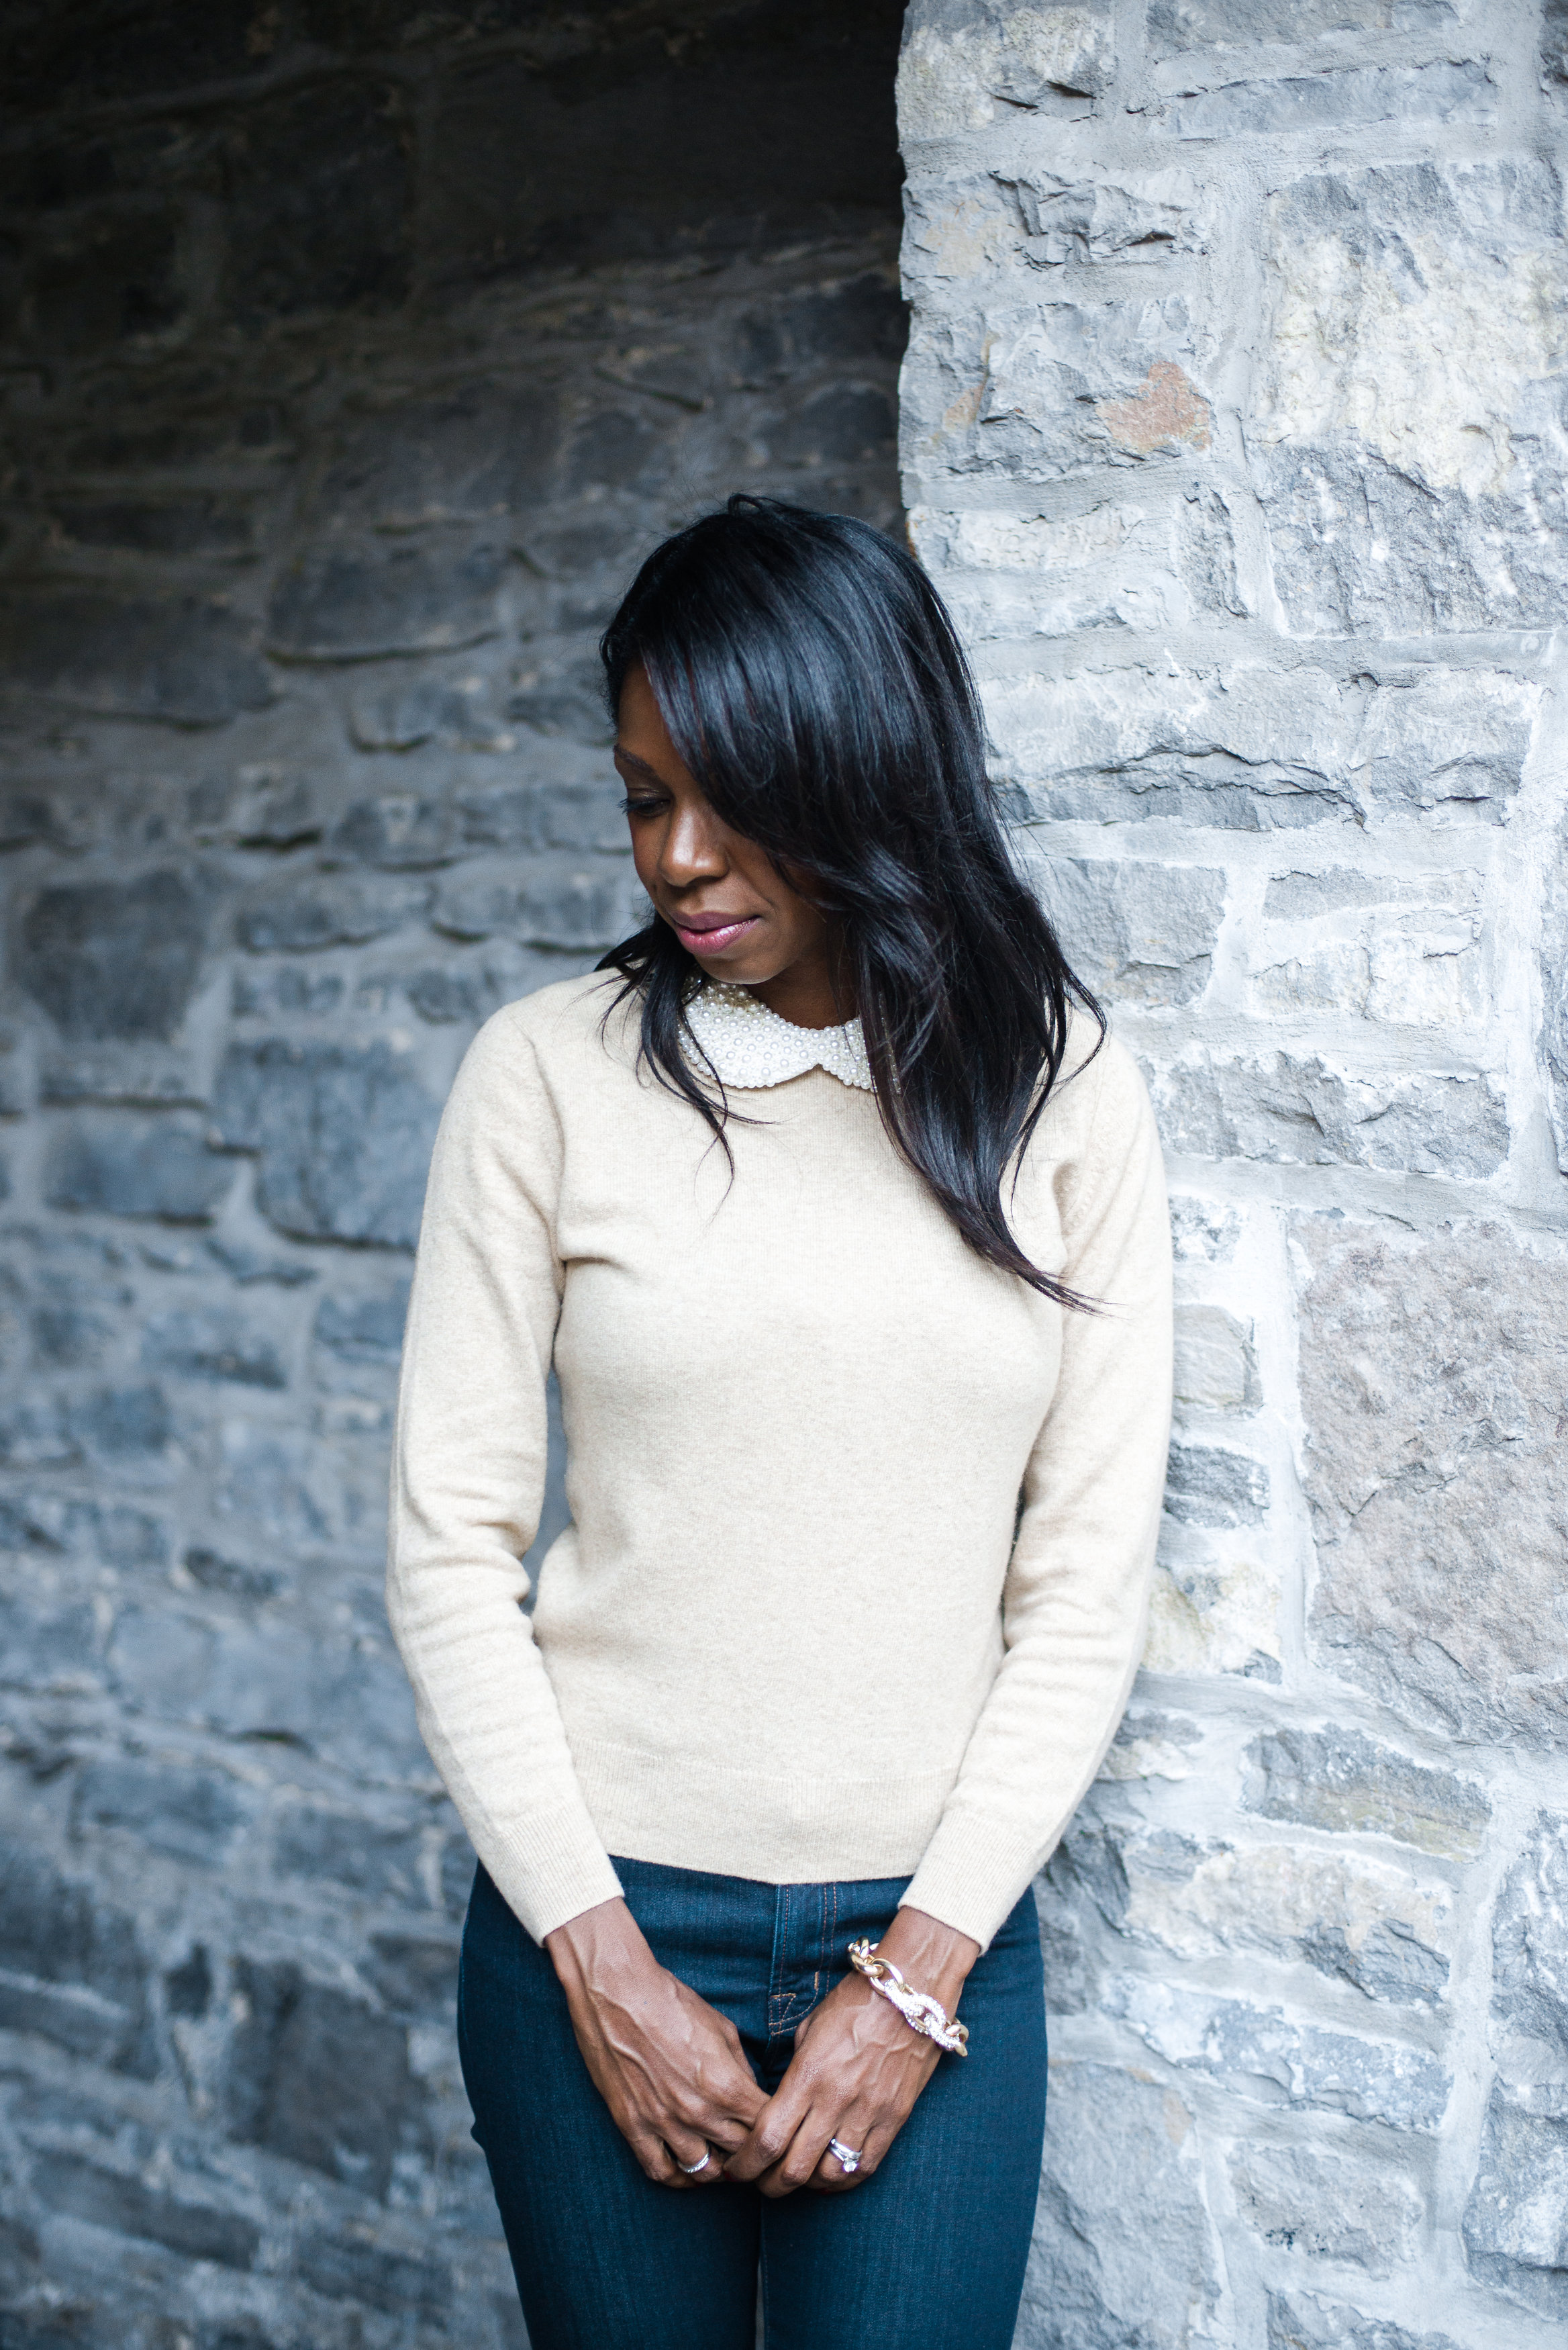 Peter Pan Collar Statement Necklace Style Domination Fashion Blogger